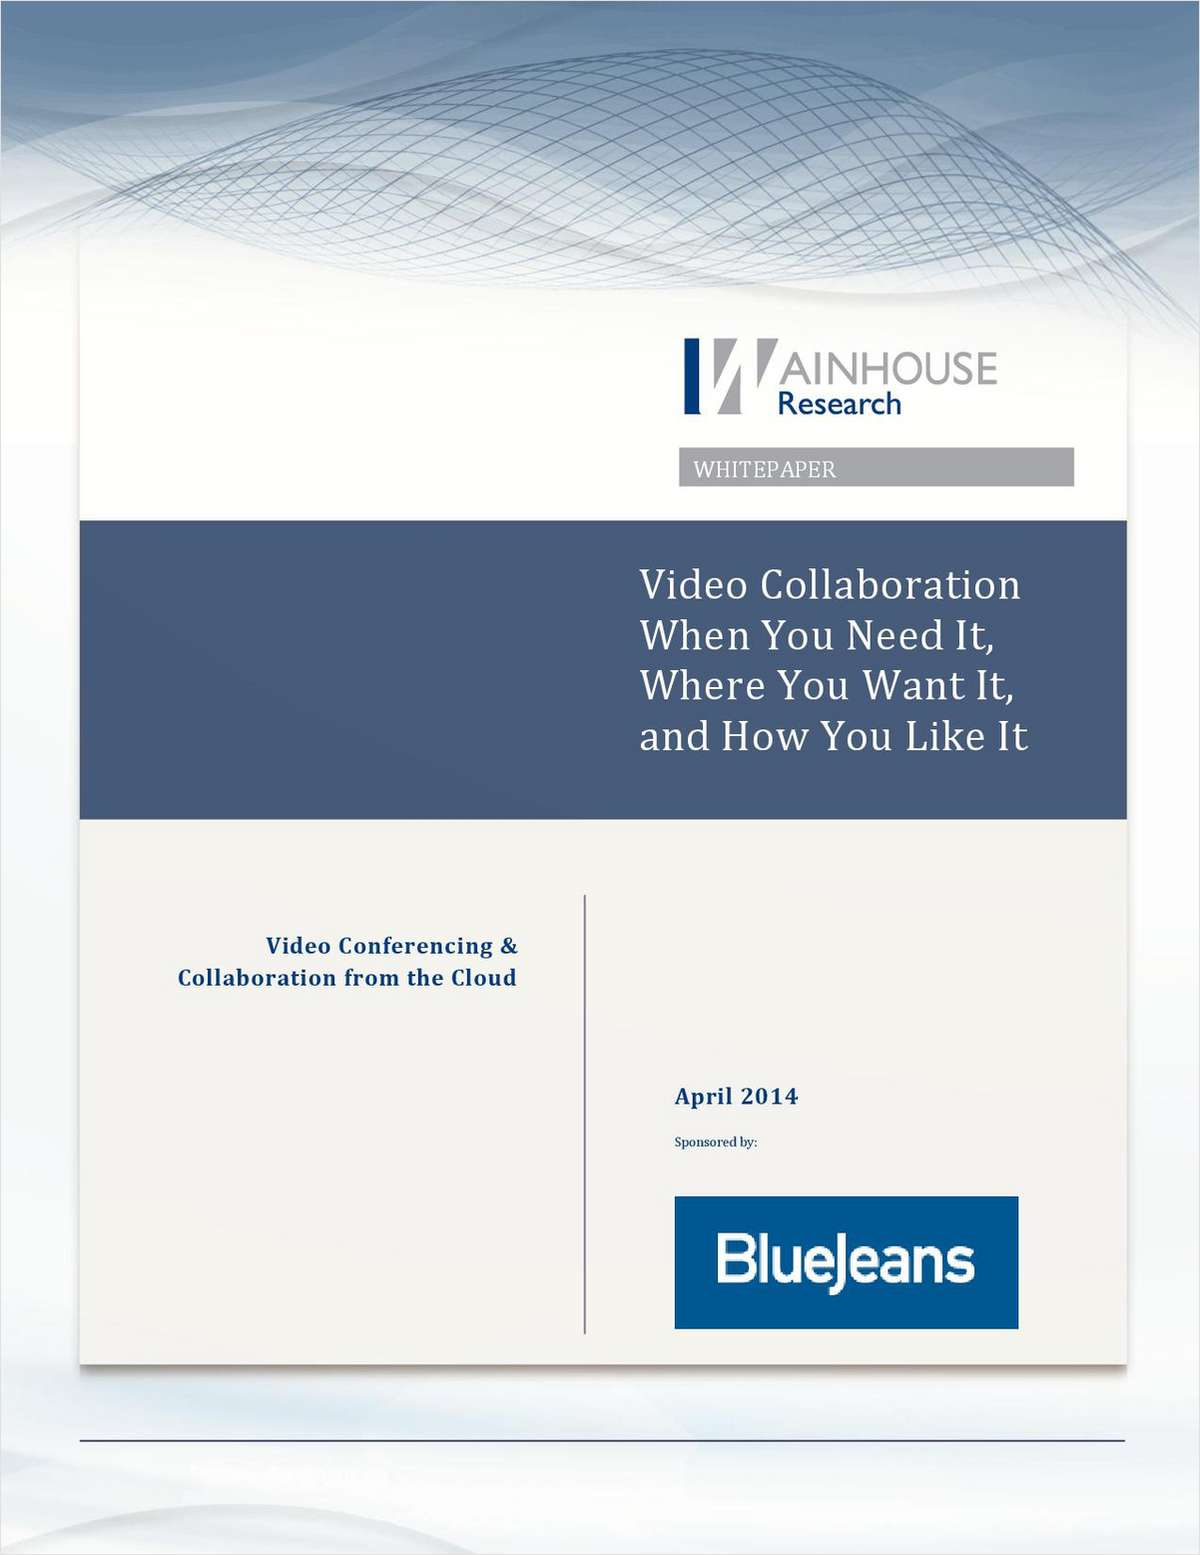 Video Collaboration When You Need It, Where You Want It, and How You Like It